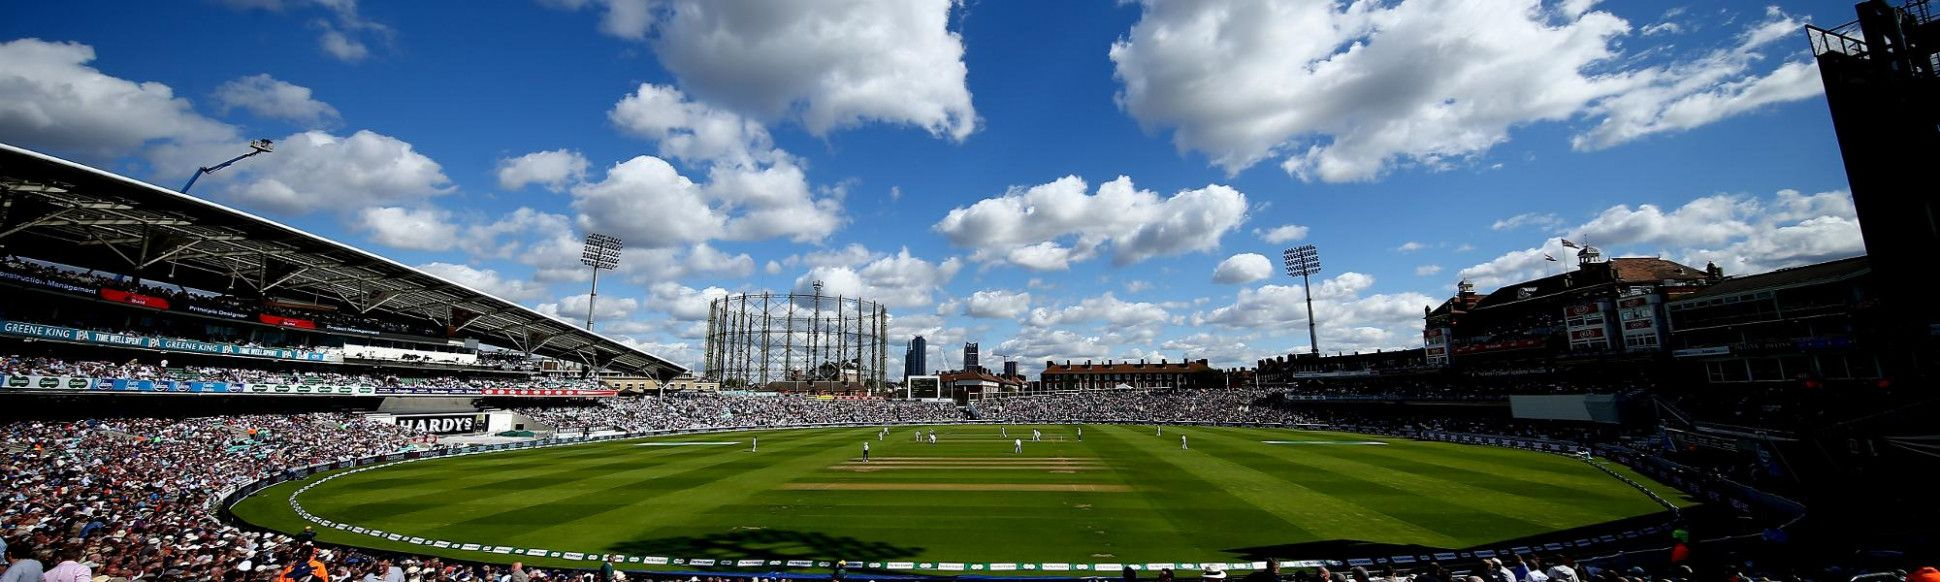 8 Image Kia Oval Fixtures 2020 Espn Cricinfo Eighty Five Percent Of Ticket Holders For This Summer S Rescheduled Test Adjoi In 2020 Kia West Indies Cricket World Cup